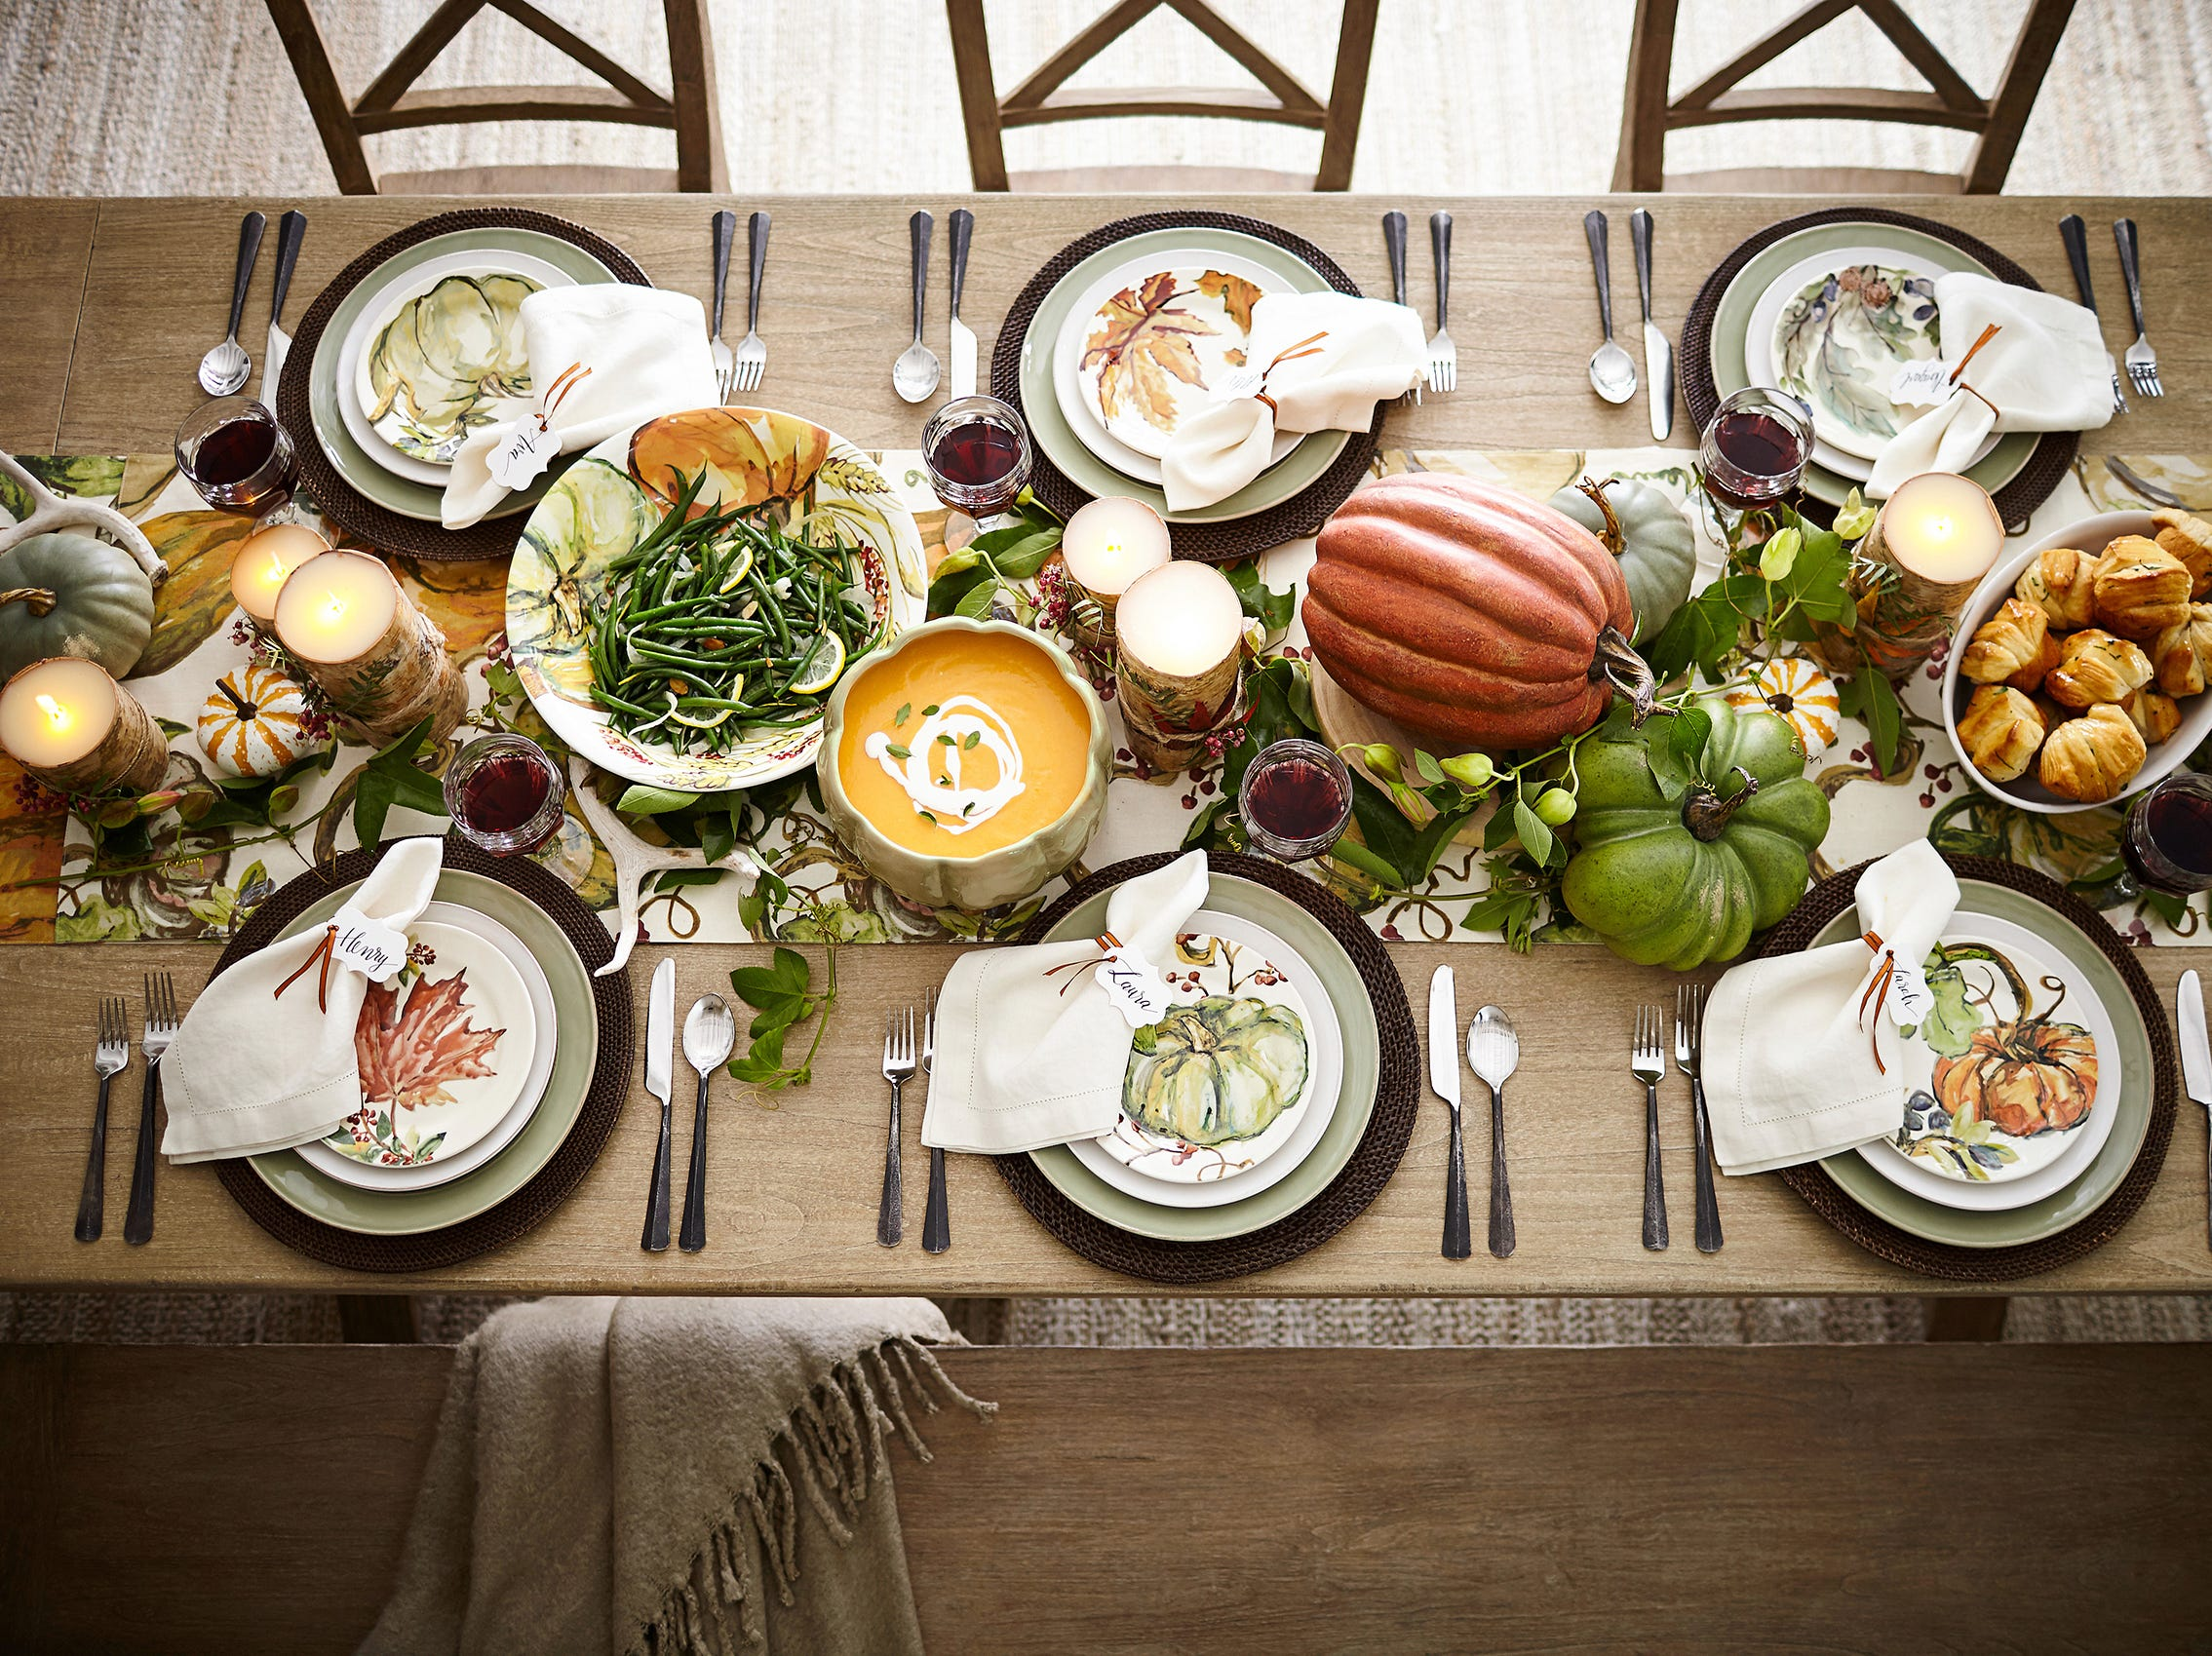 The simplicity of this table shows how pattern (used as a punctuation) and seasonal colors, as well as those of the foods plated, create a dynamic energy. Pumpkin and leaf motifs in soft russets and greens in Harvest Pumpkin and Watercolor Leaf plates are from Pottery Barn. The motifs, drawn from original watercolors, decorate glazed ironstone. They sit on celadon Cambria stoneware plates with hand-applied patina and sprayed glaze, on top of Tava round woven rattan place mats in espresso (honey and natural also available). Ridge flatware is 18/8 stainless steel finished with a richly distressed dark patina and gleaming tips for a modern look. On the Harvest Pumpkin table runner, patterned orange and green pumpkins mingle with serving bowls filled with green beans, pumpkin soup and caramel dinner rolls, each of which adds its own appetizing color.